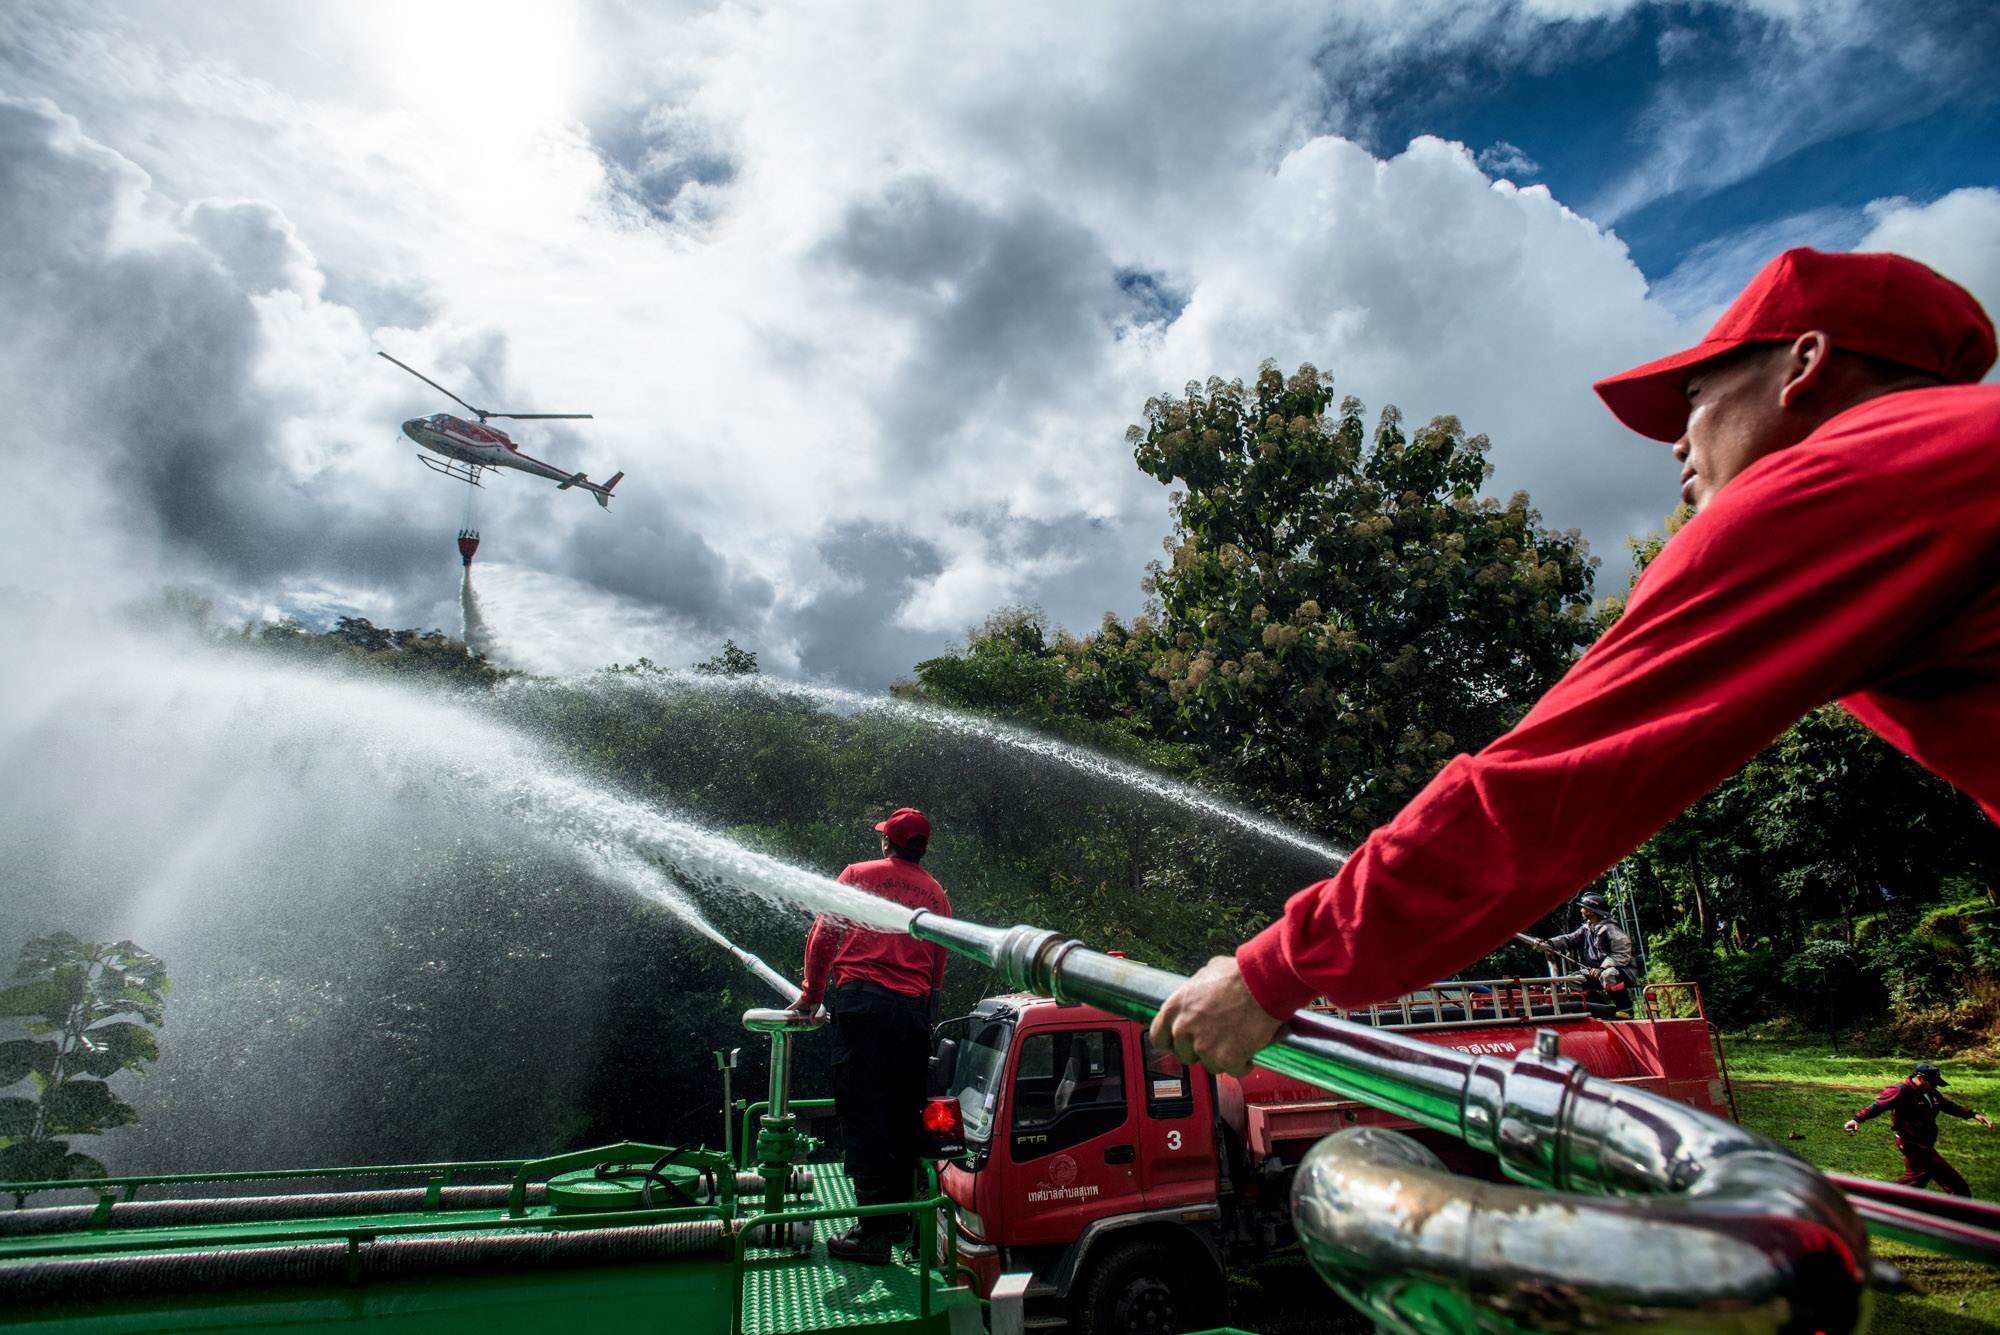 Firefighters demonstrate thecapability of handling a wildfire